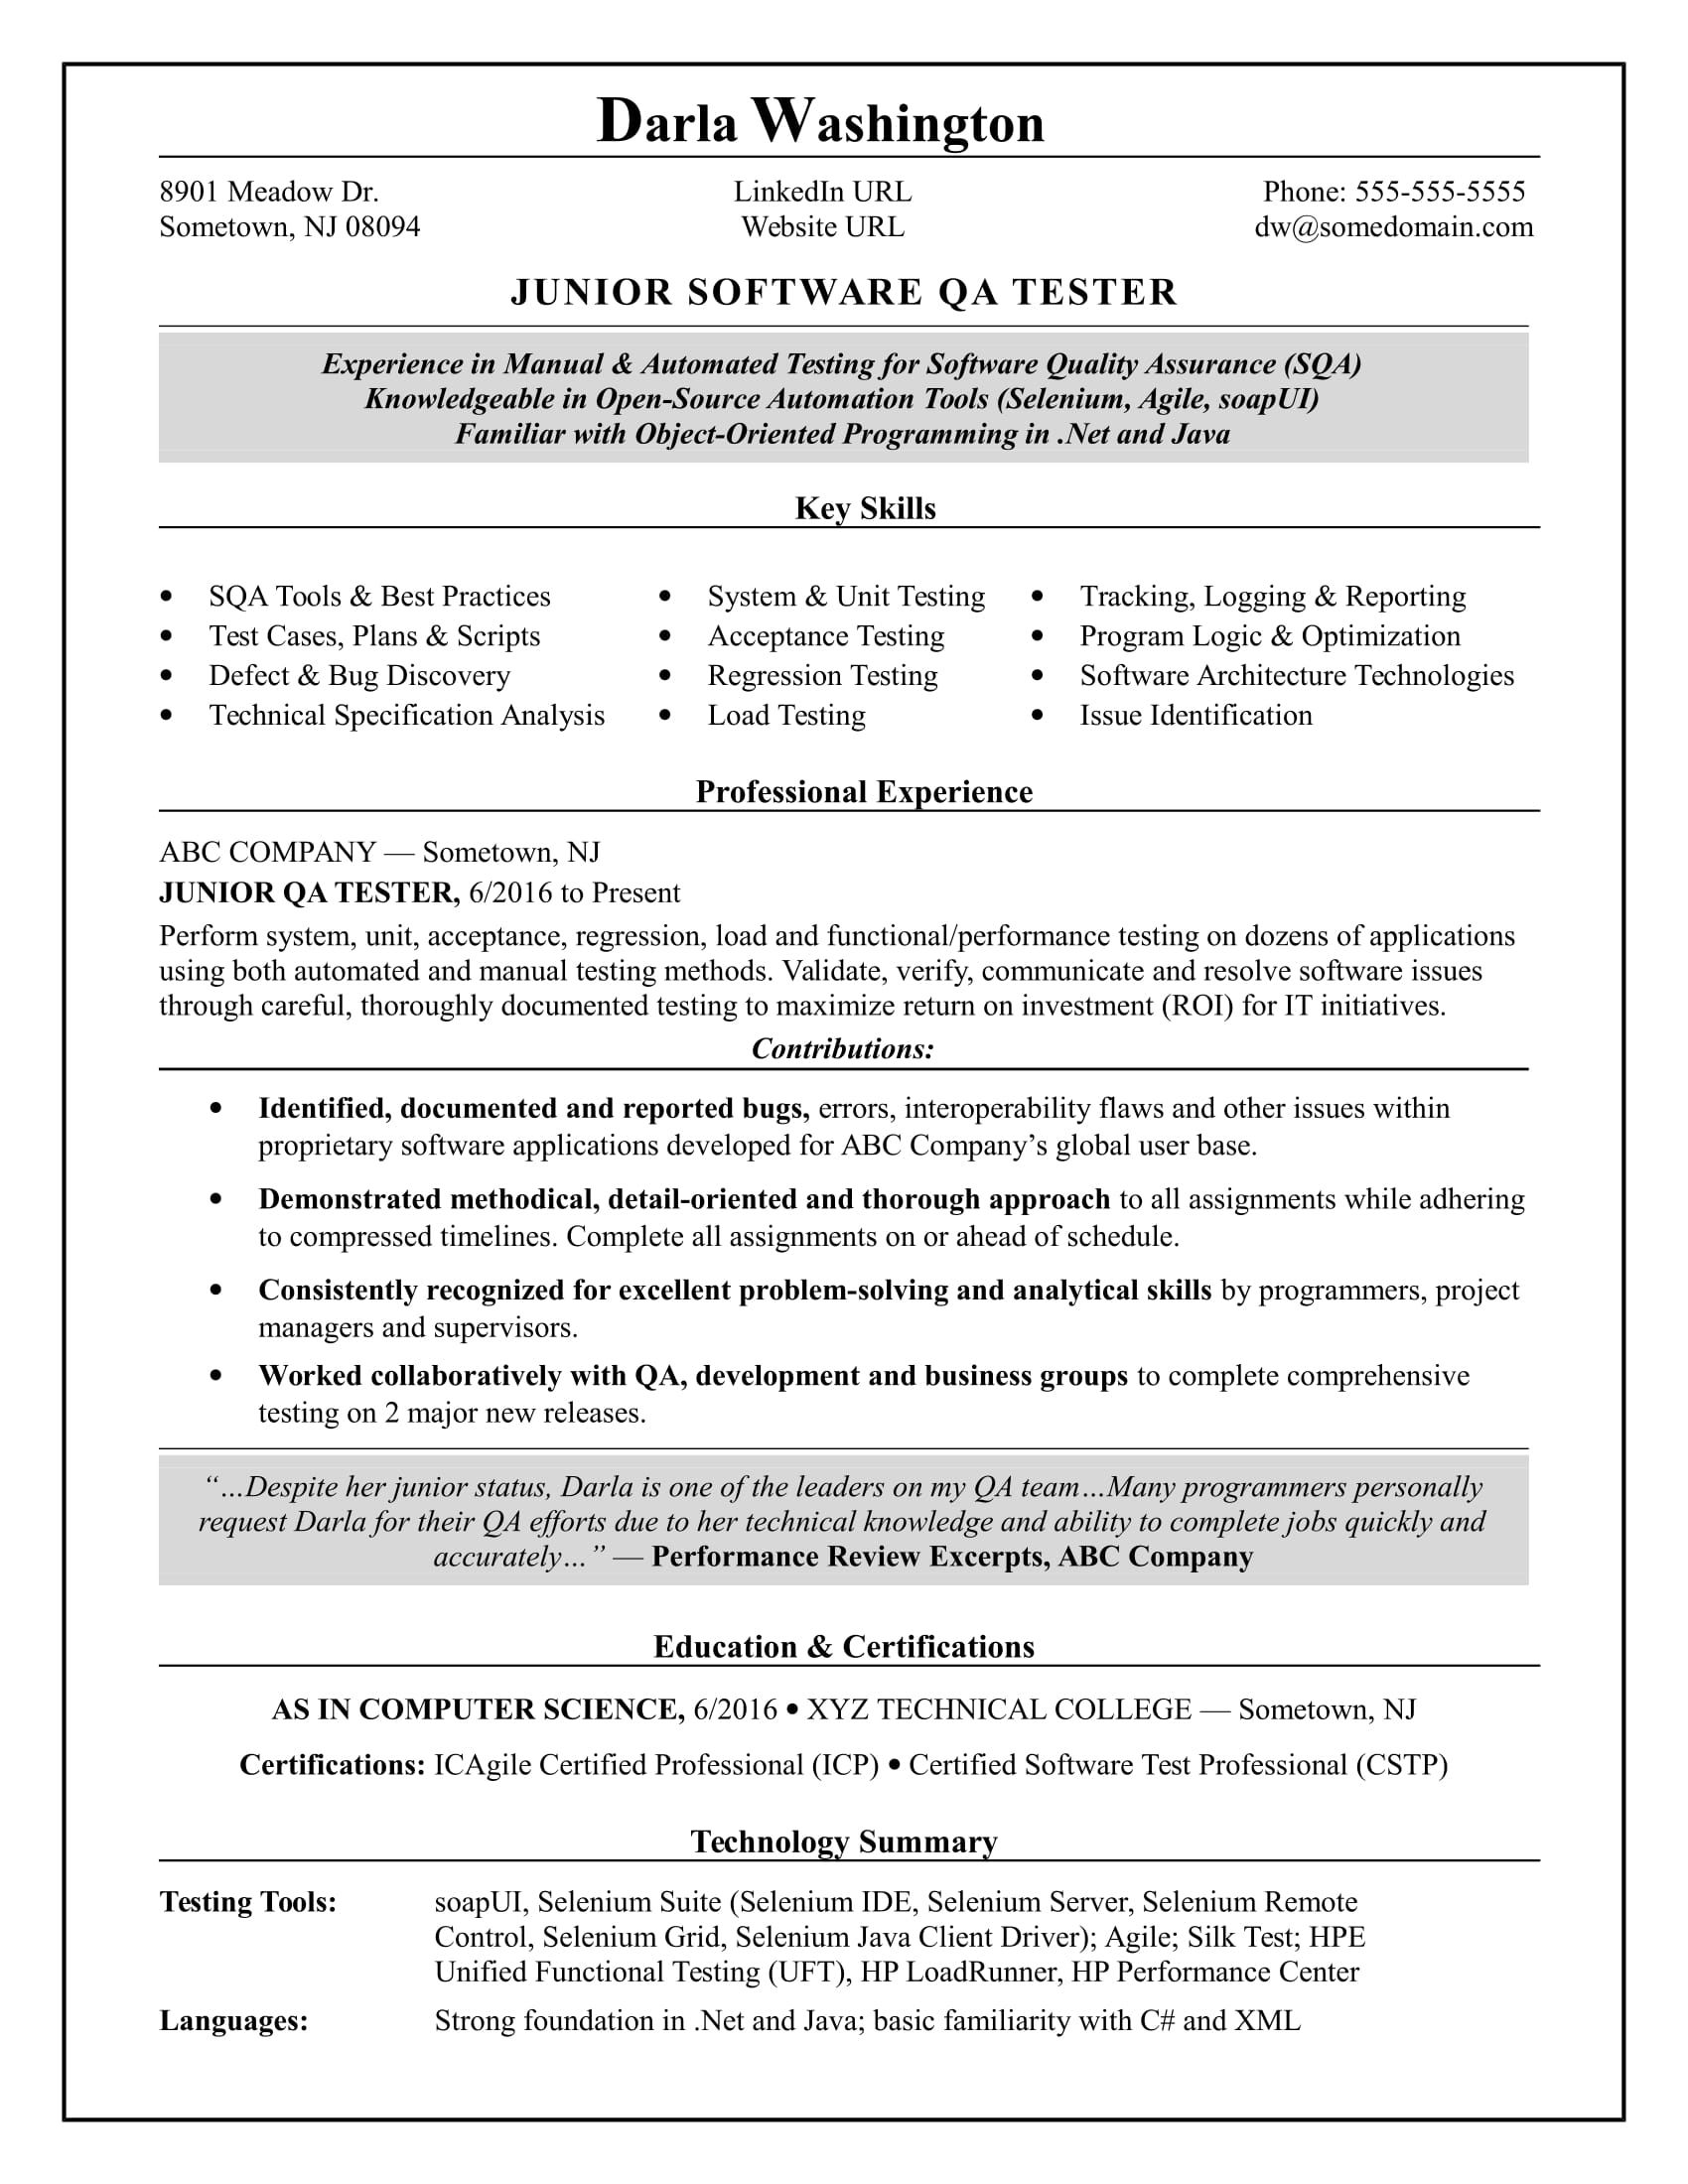 Knowledge Skills And Abilities Resume Example.Entry Level Qa Software Tester Resume Sample Monster Com